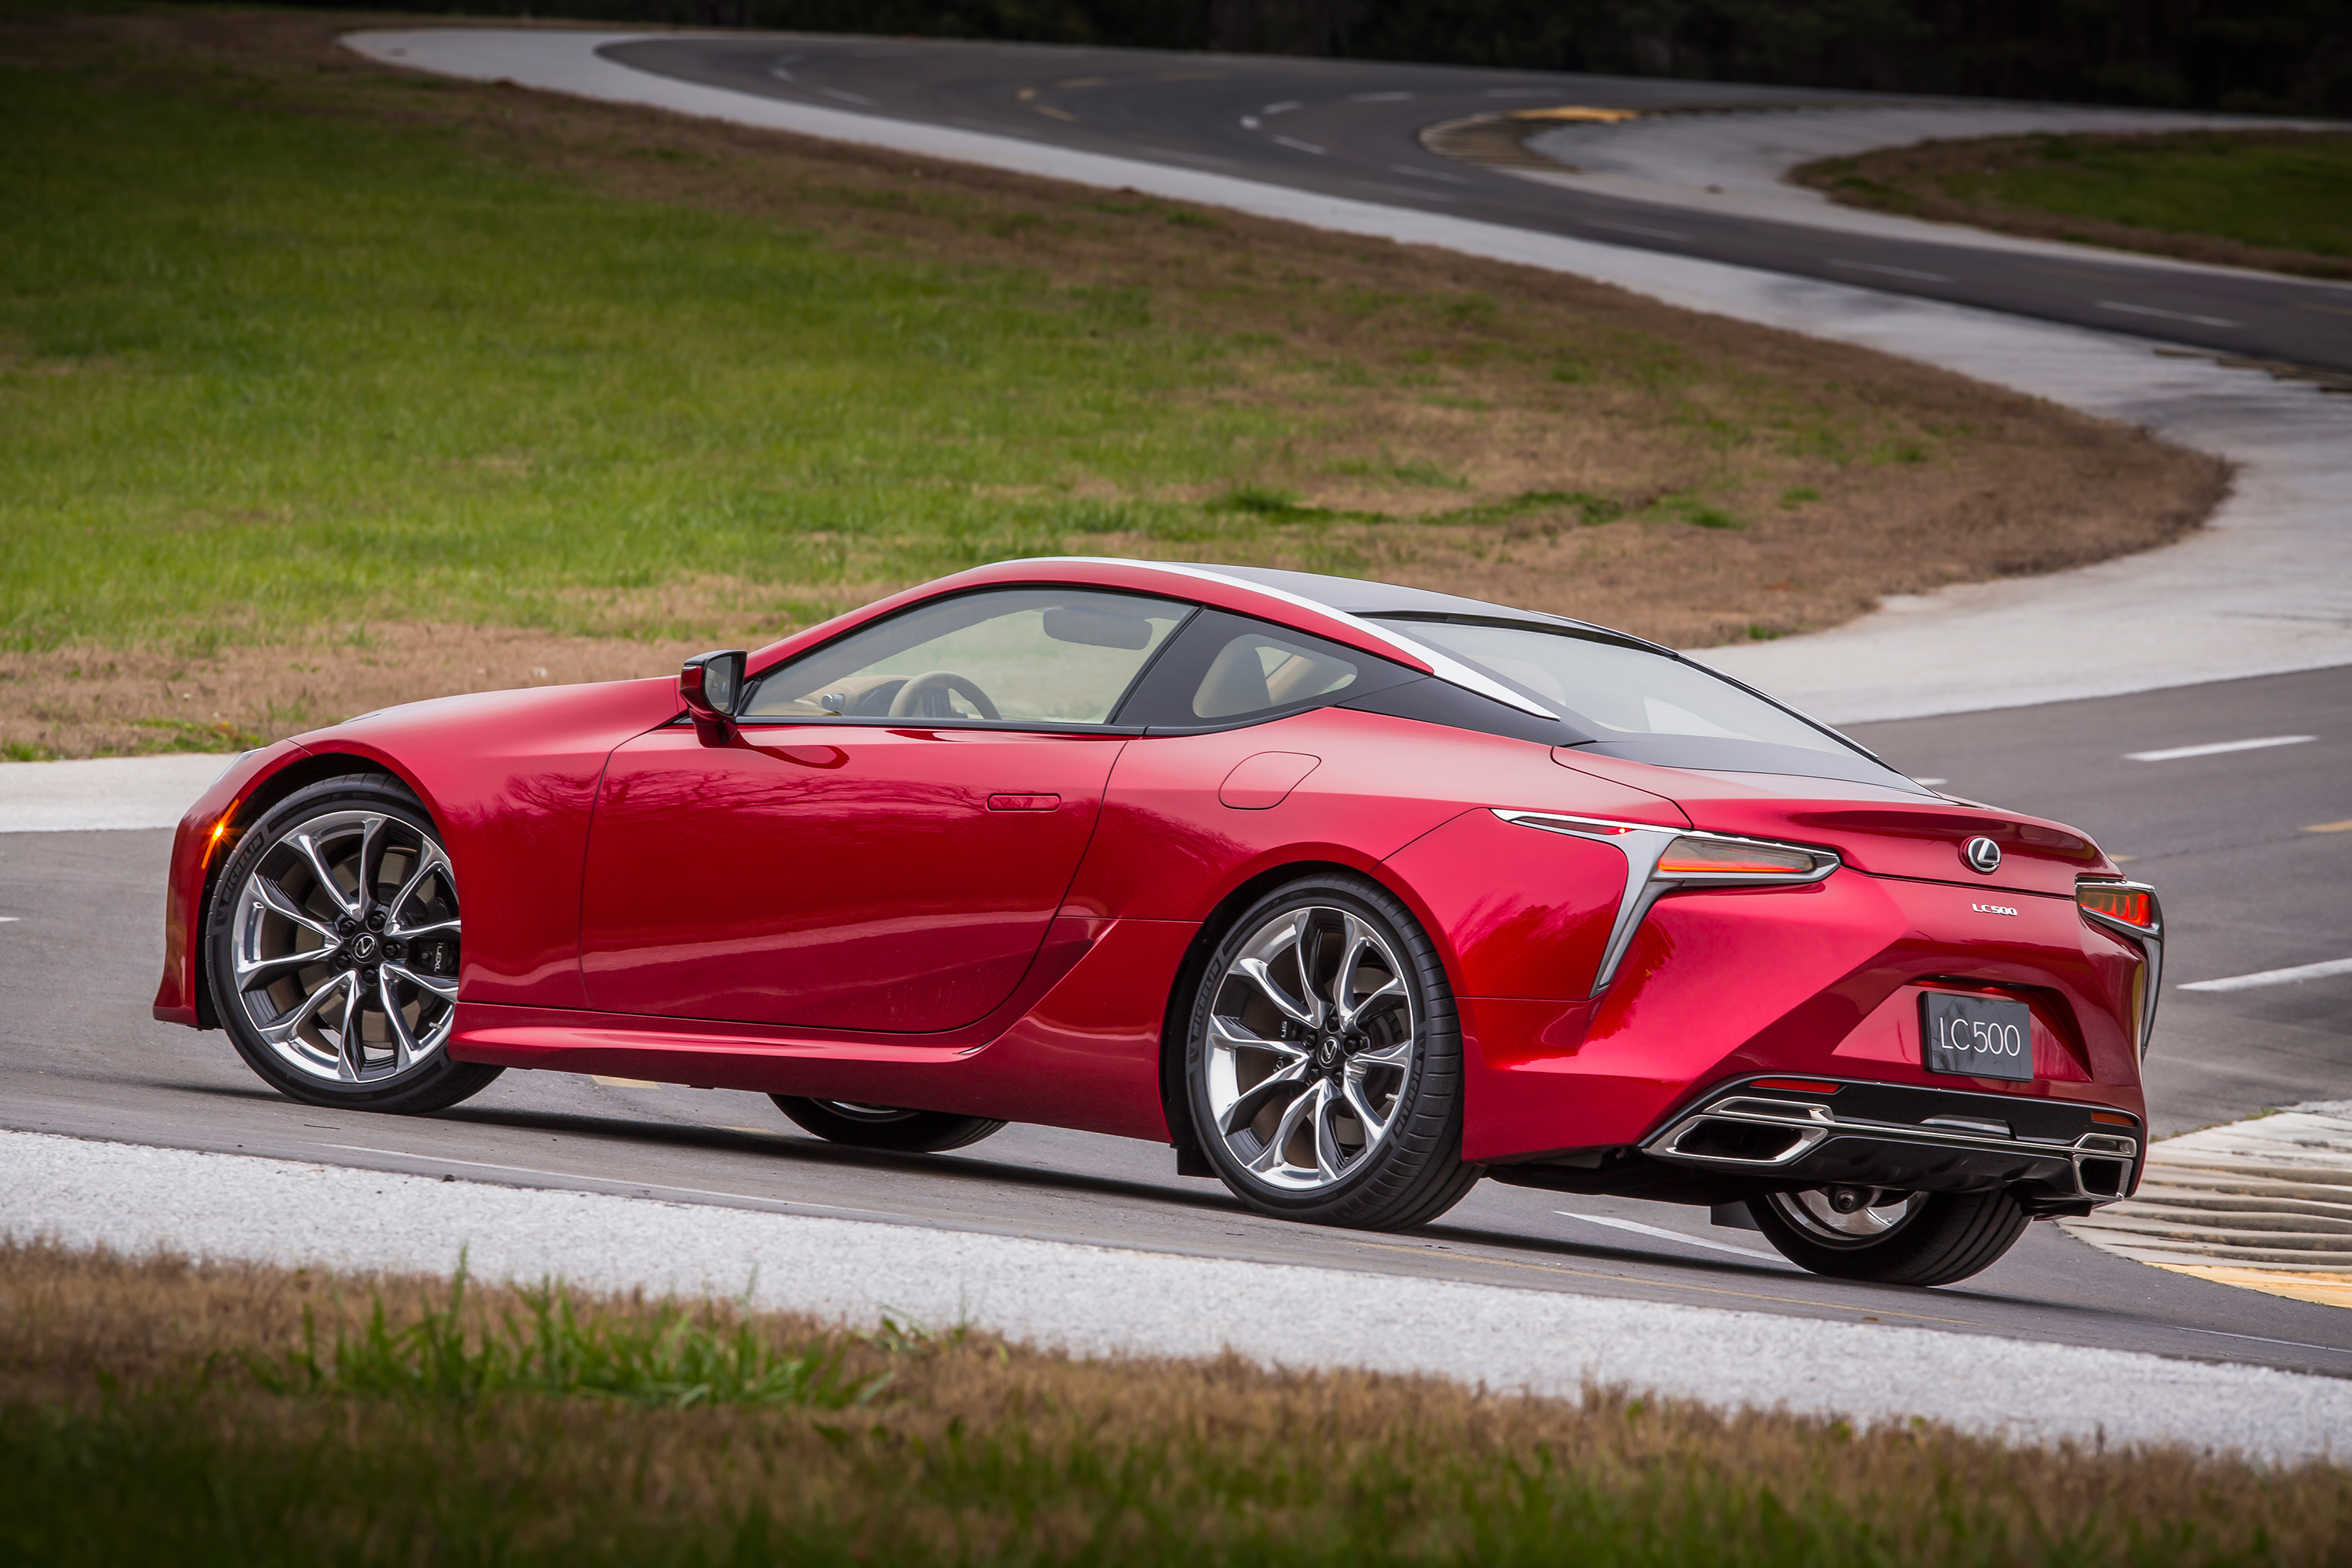 The Lexus Lc 500 Is A Big Powerful Flagship Coupe And It Wont